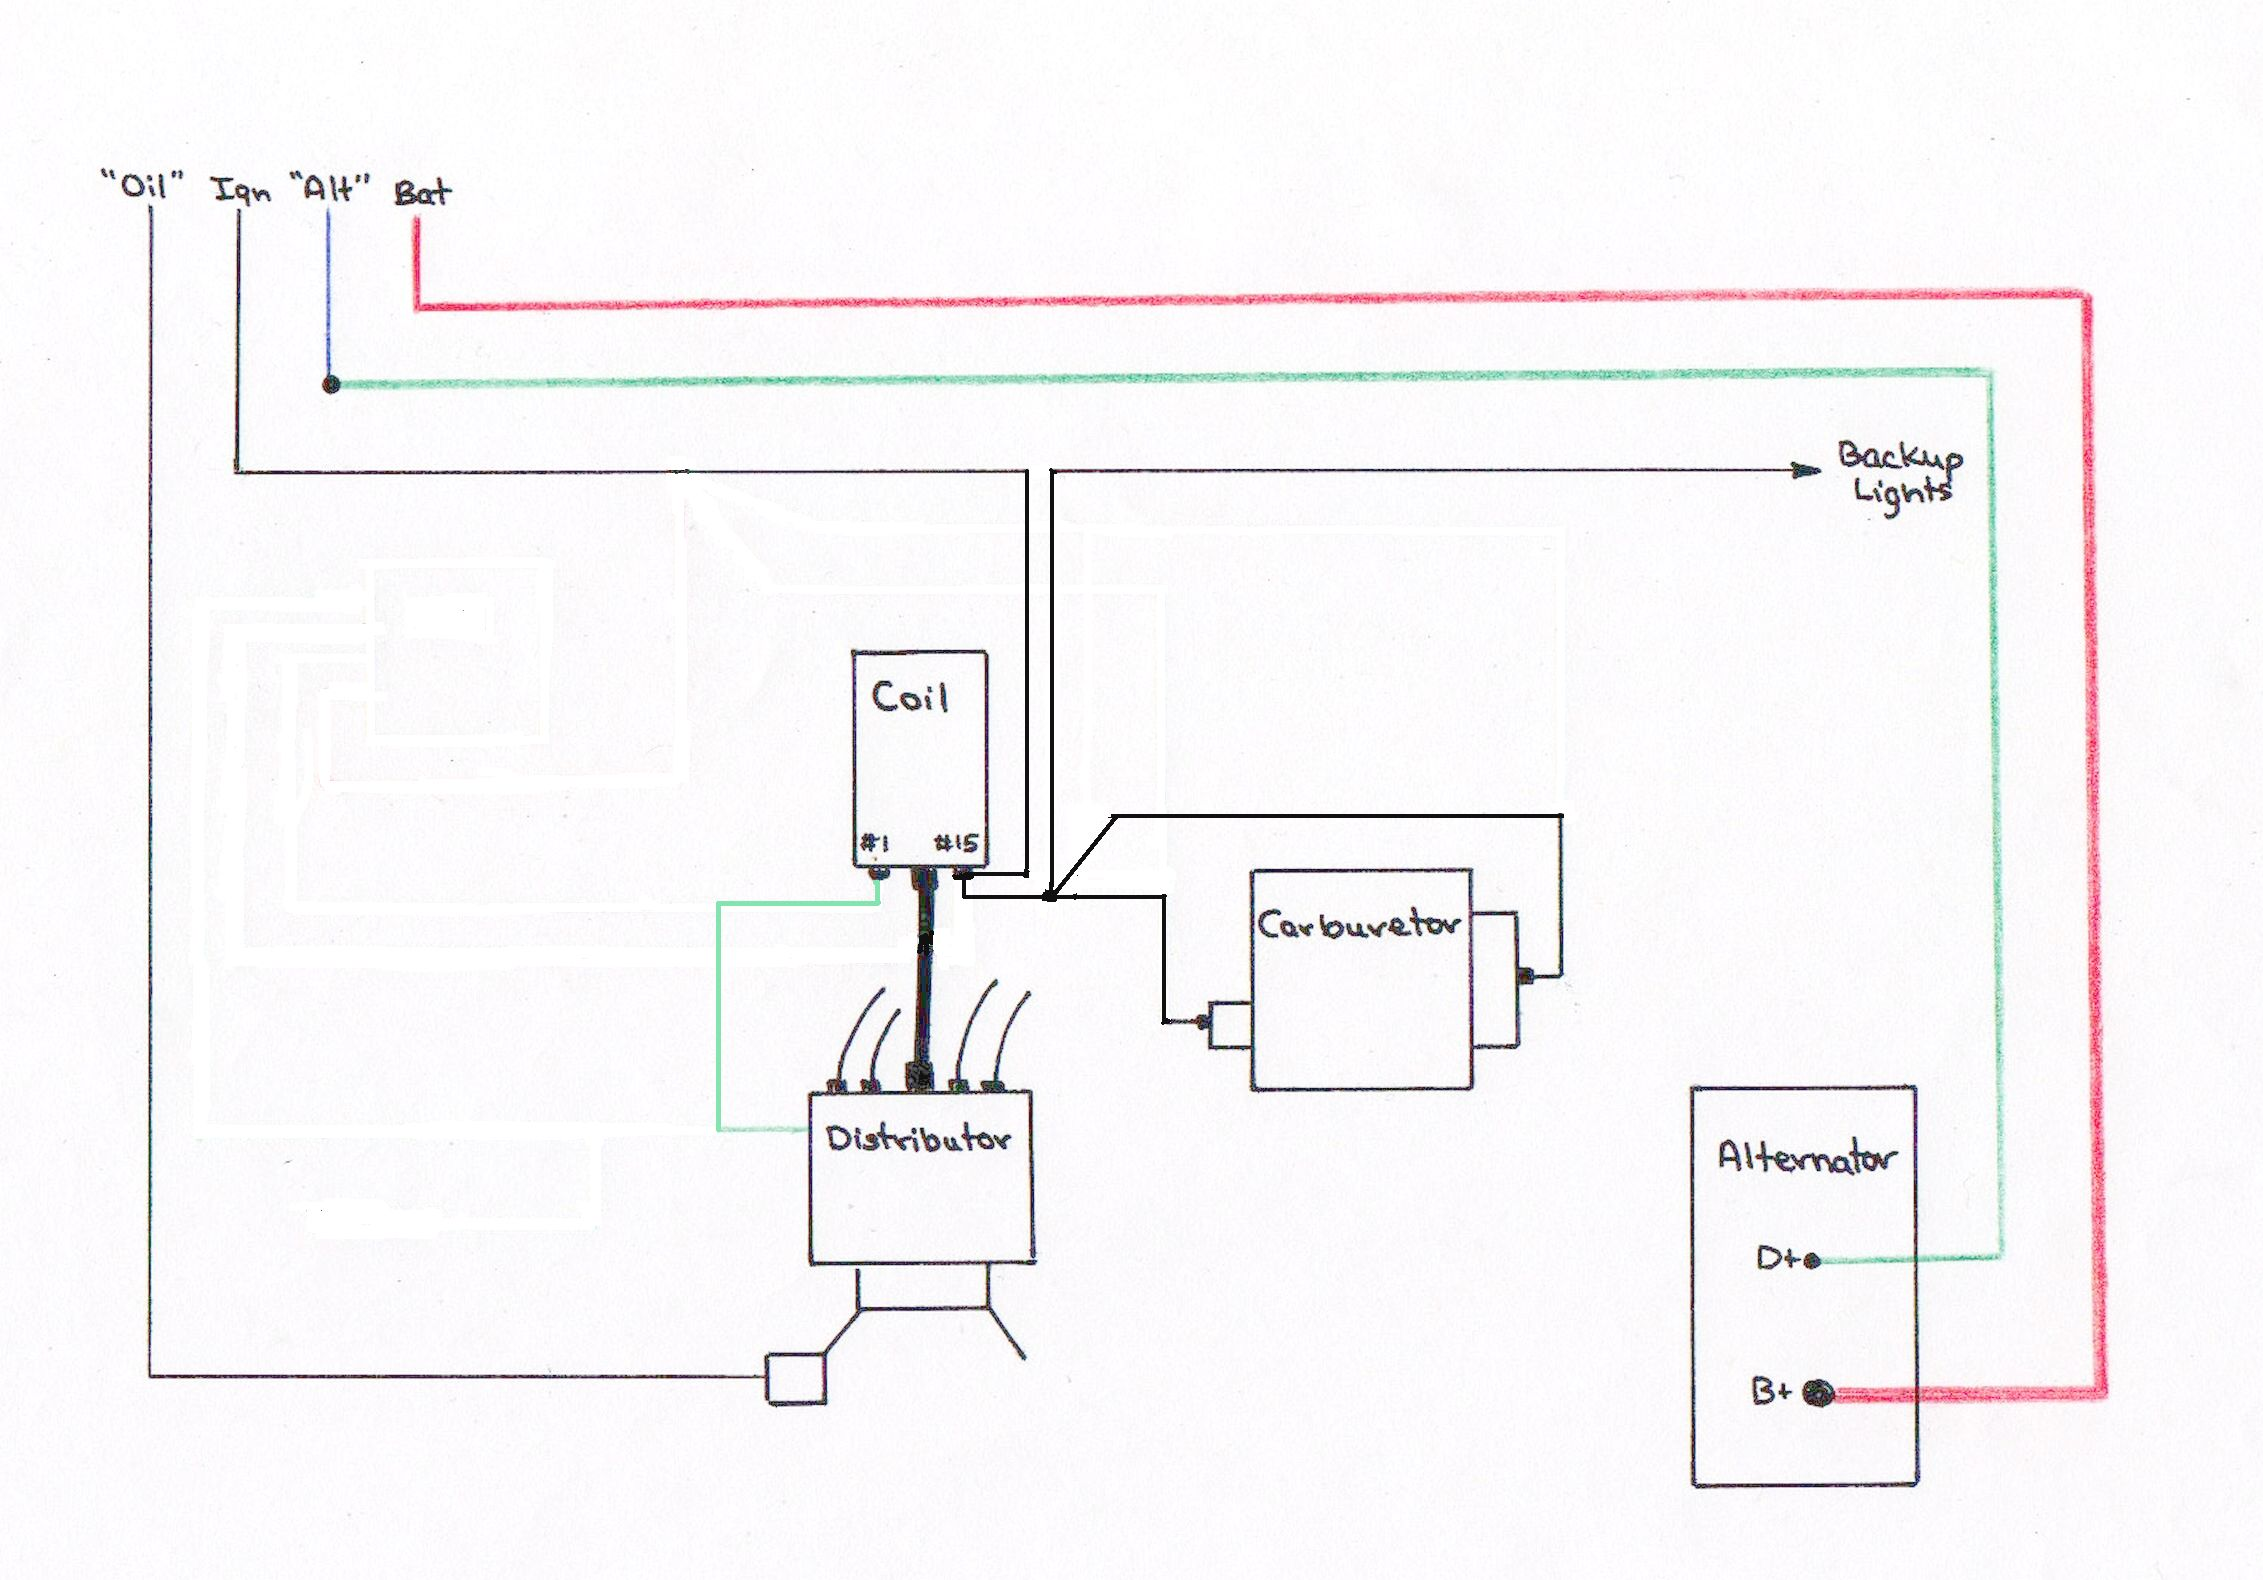 handdrawn_schematic alternator wiring valeo alternator regulator wiring diagram at eliteediting.co